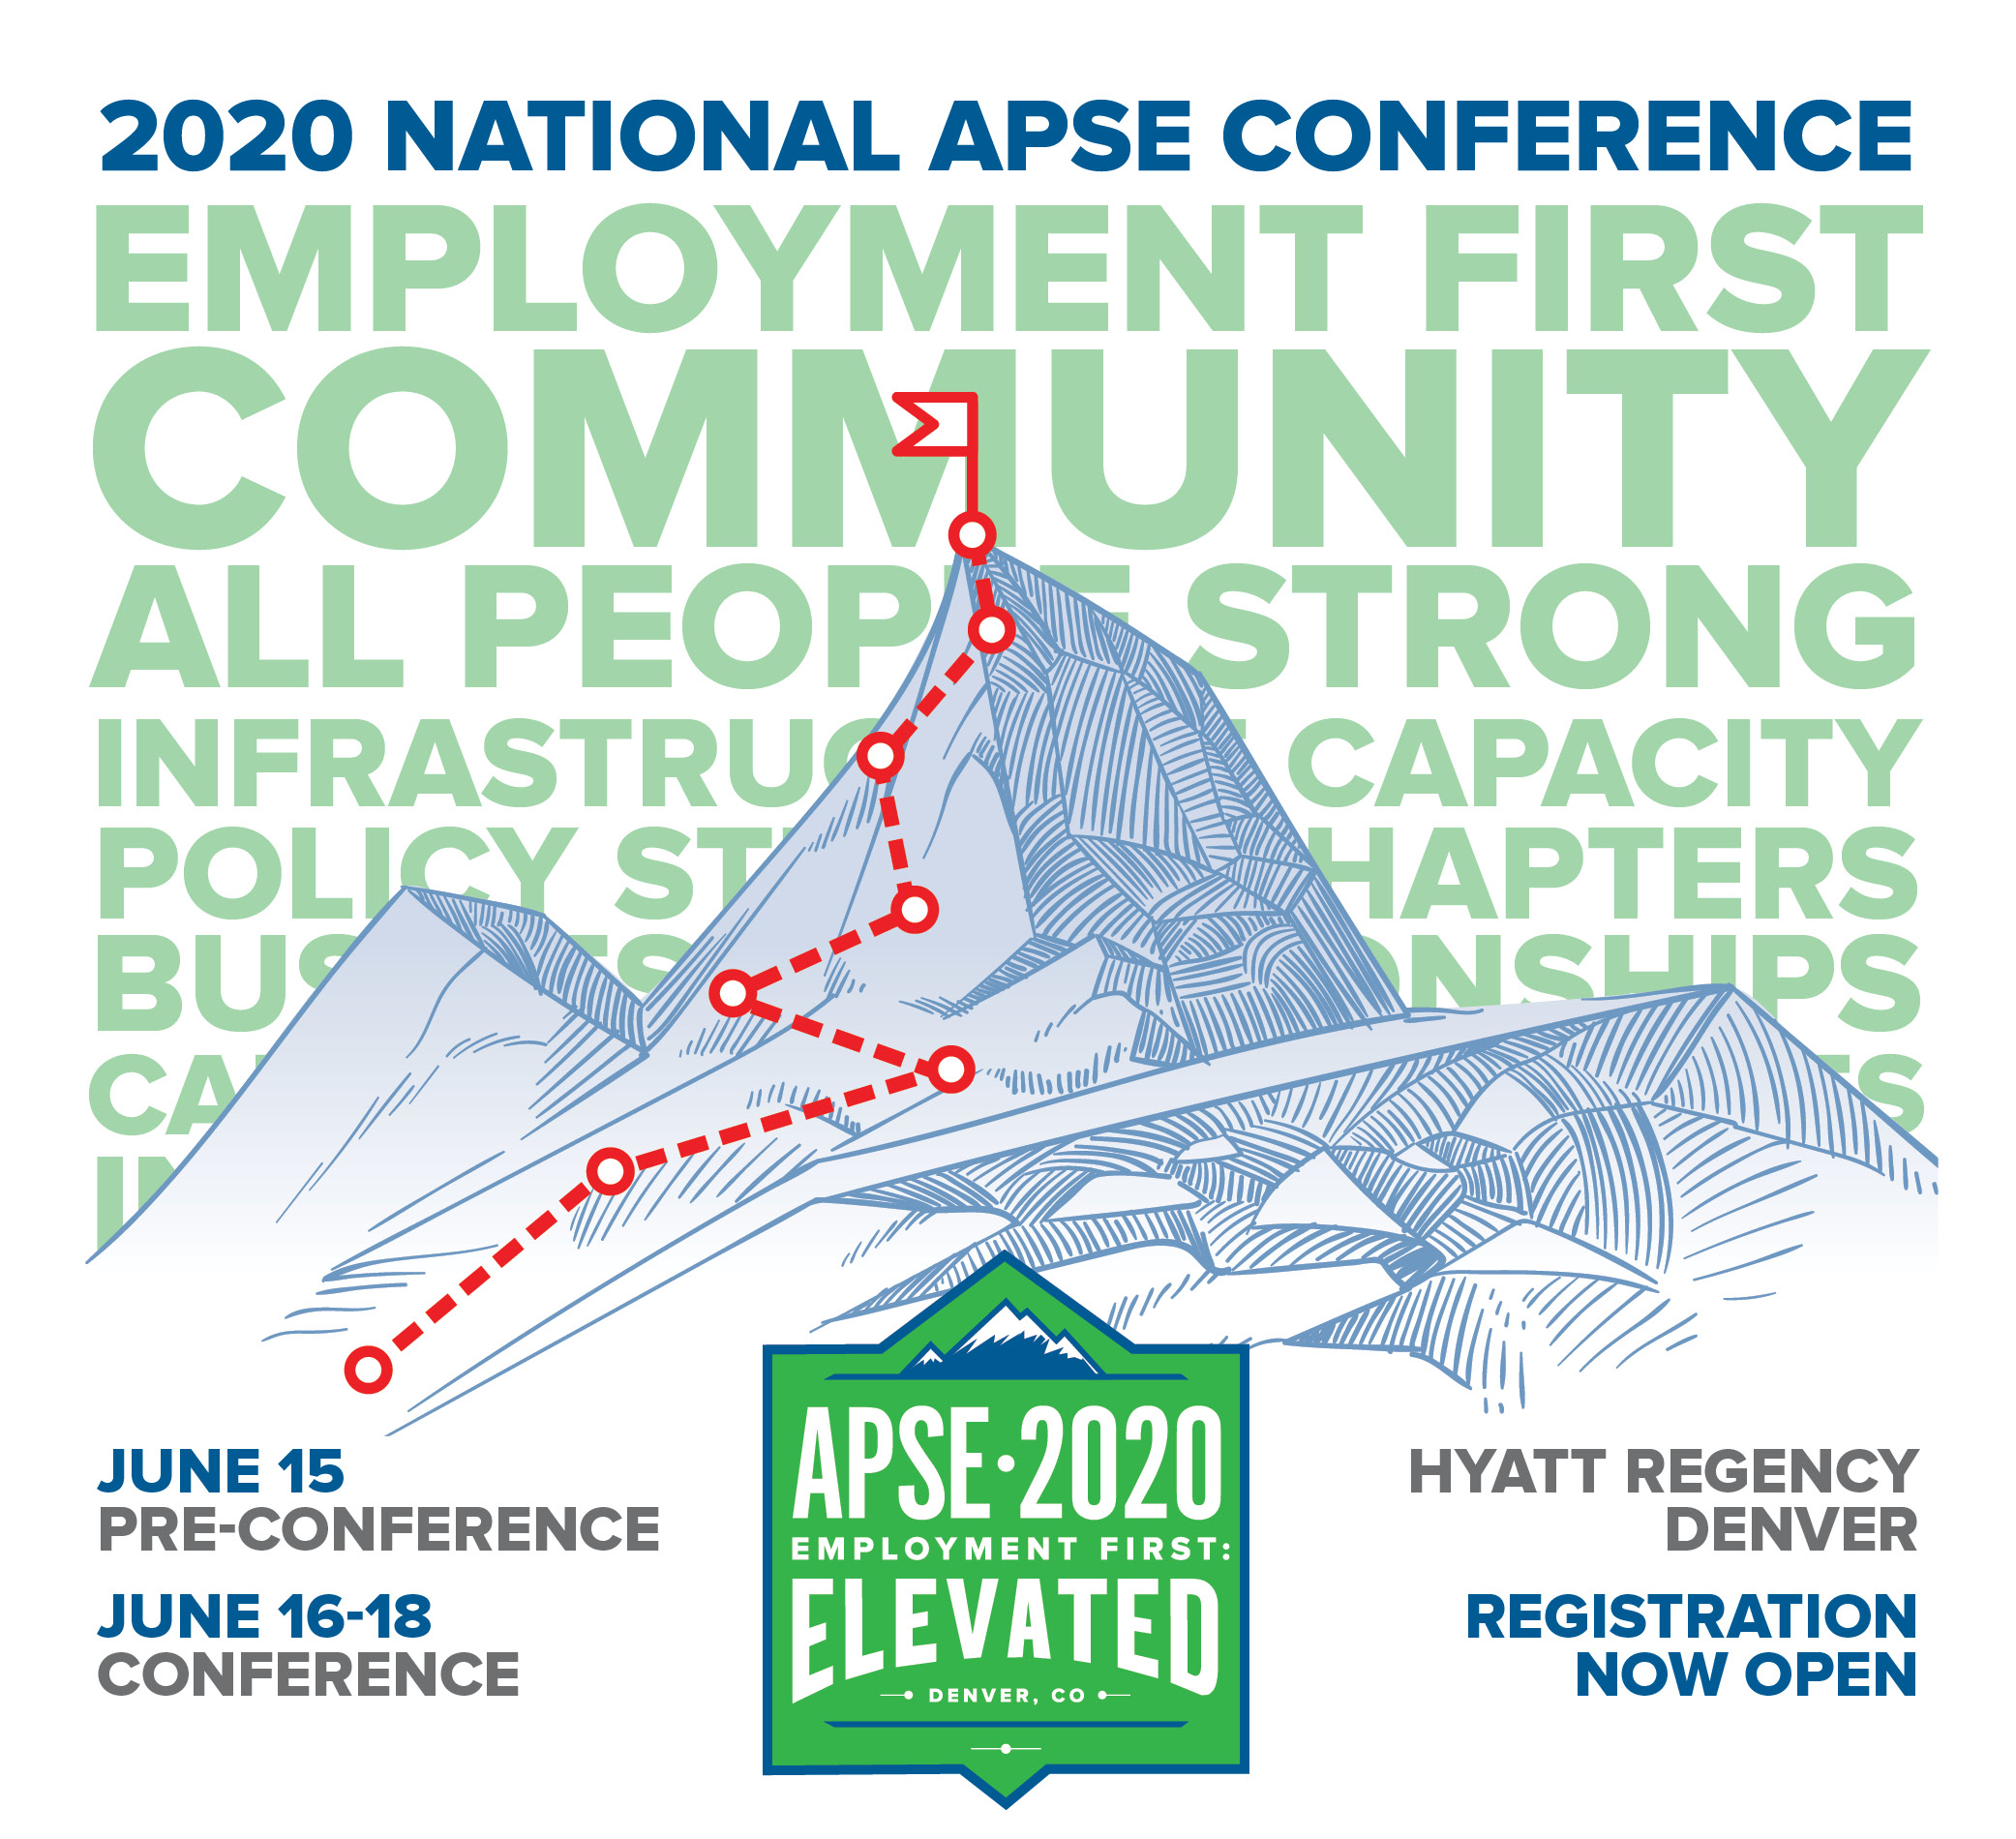 Image of 2020 National APSE conference graphic